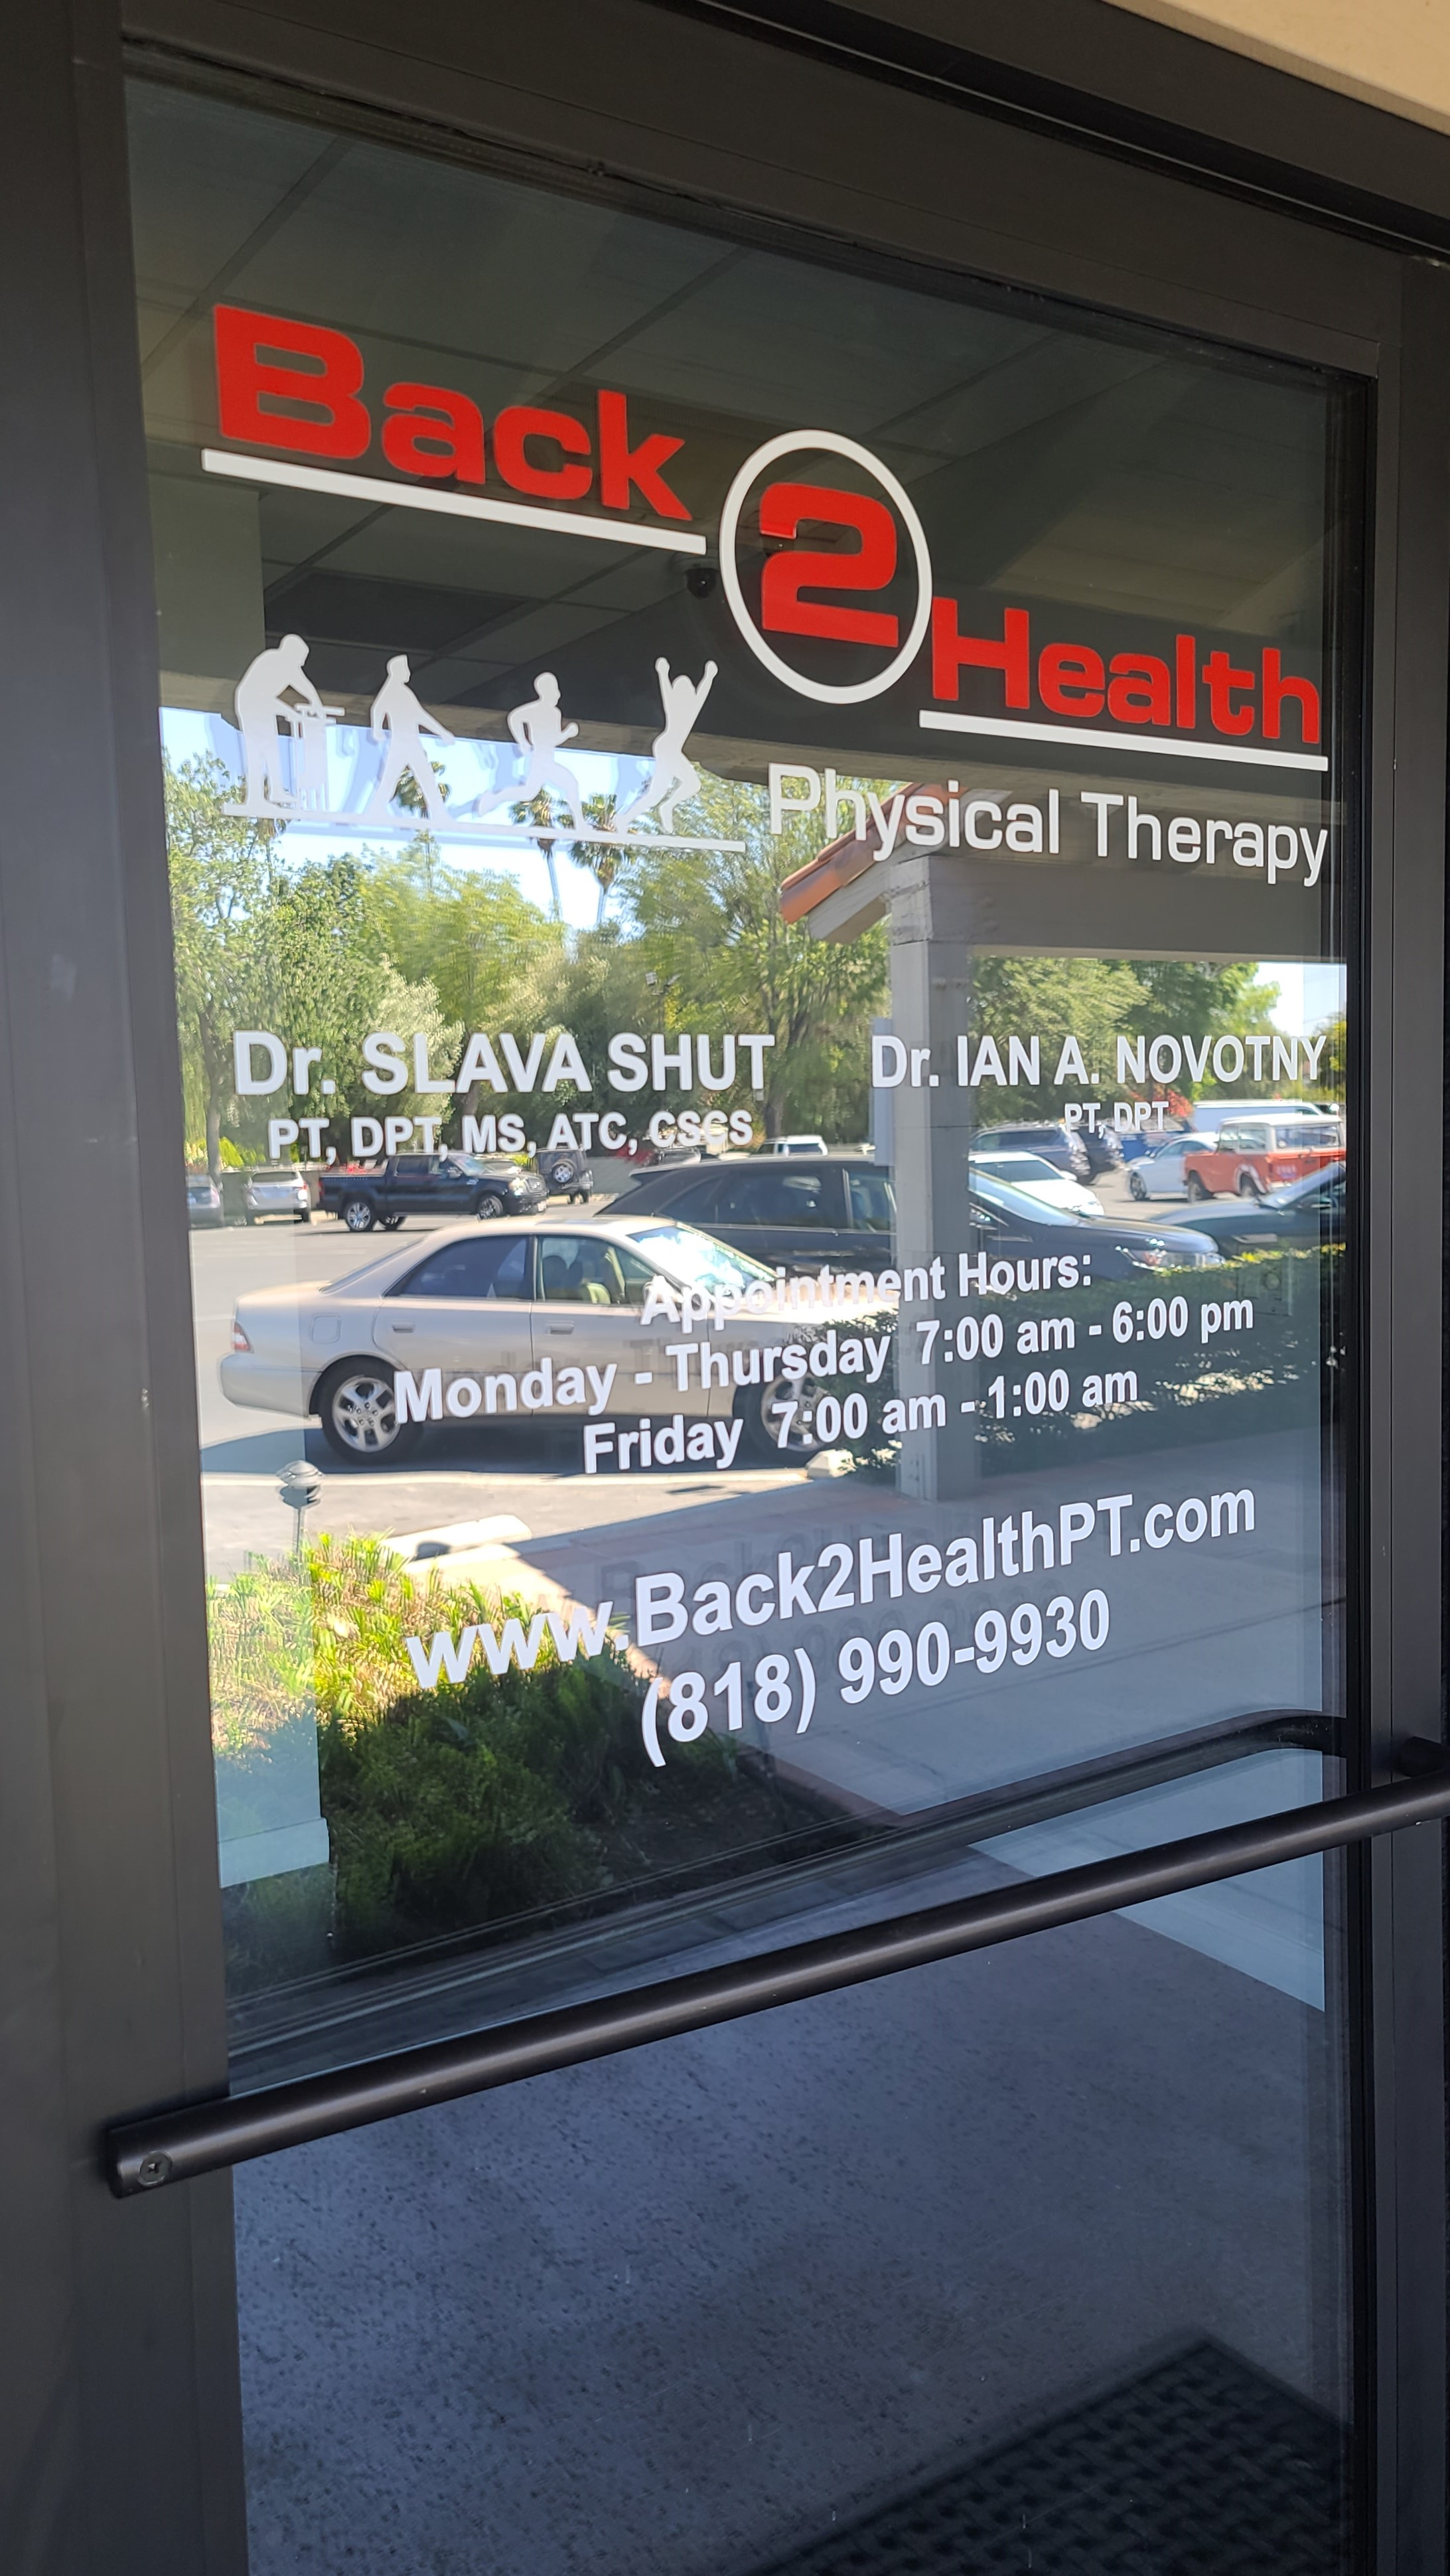 Doorway window graphics for Back 2 Health's sign package for their Encino physical therapy center.